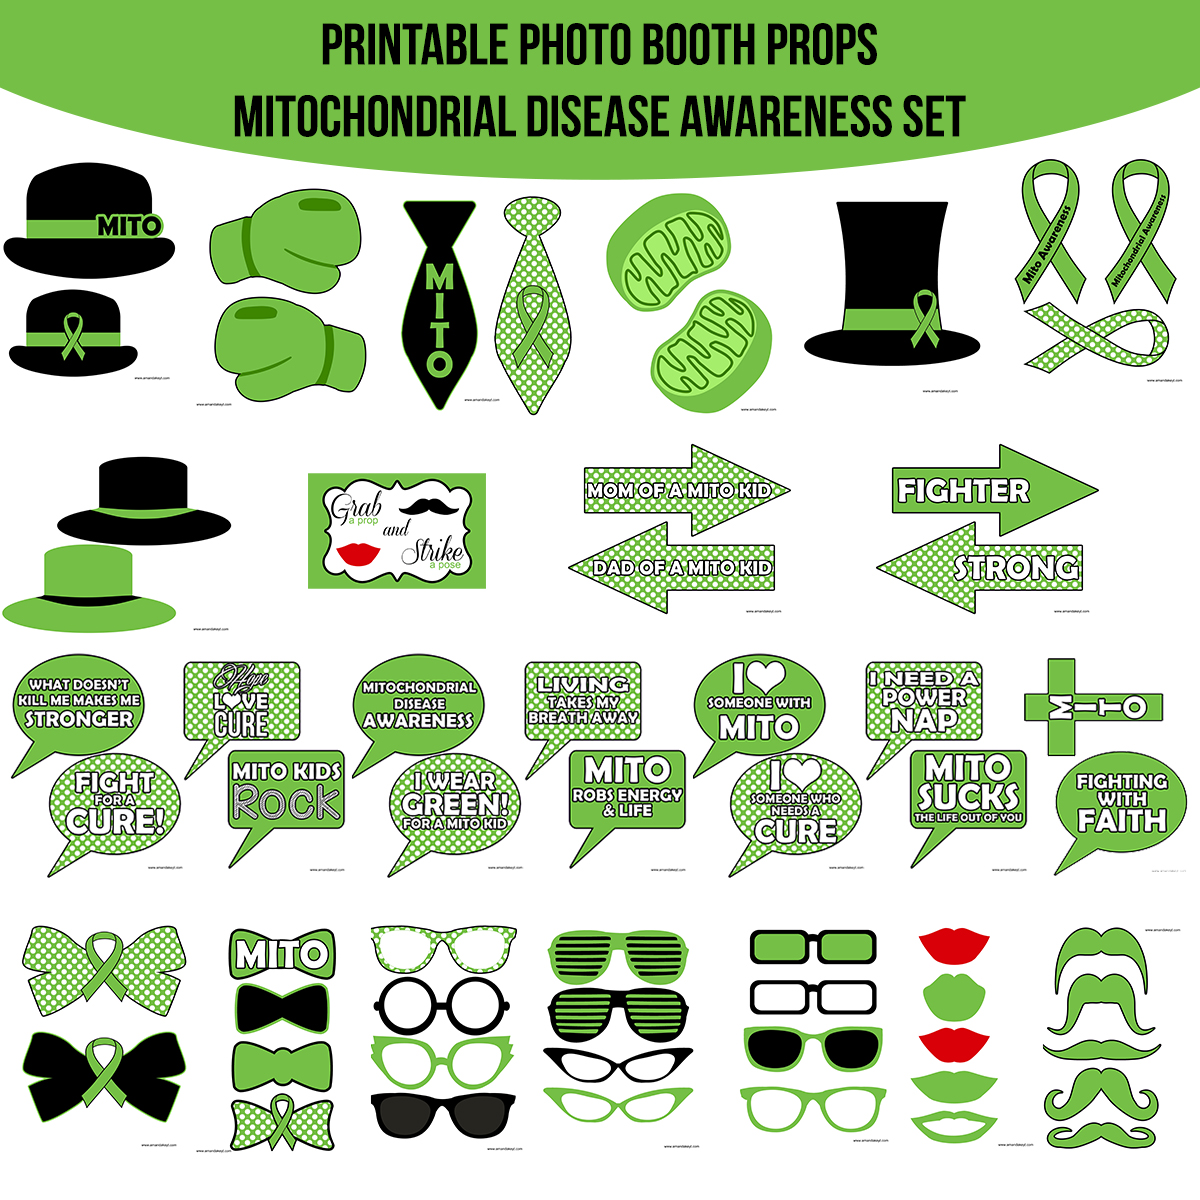 See the Set - To View The Whole Mitrochondrial Mito Disease Awareness Printable Photo Booth Prop Set Click Here